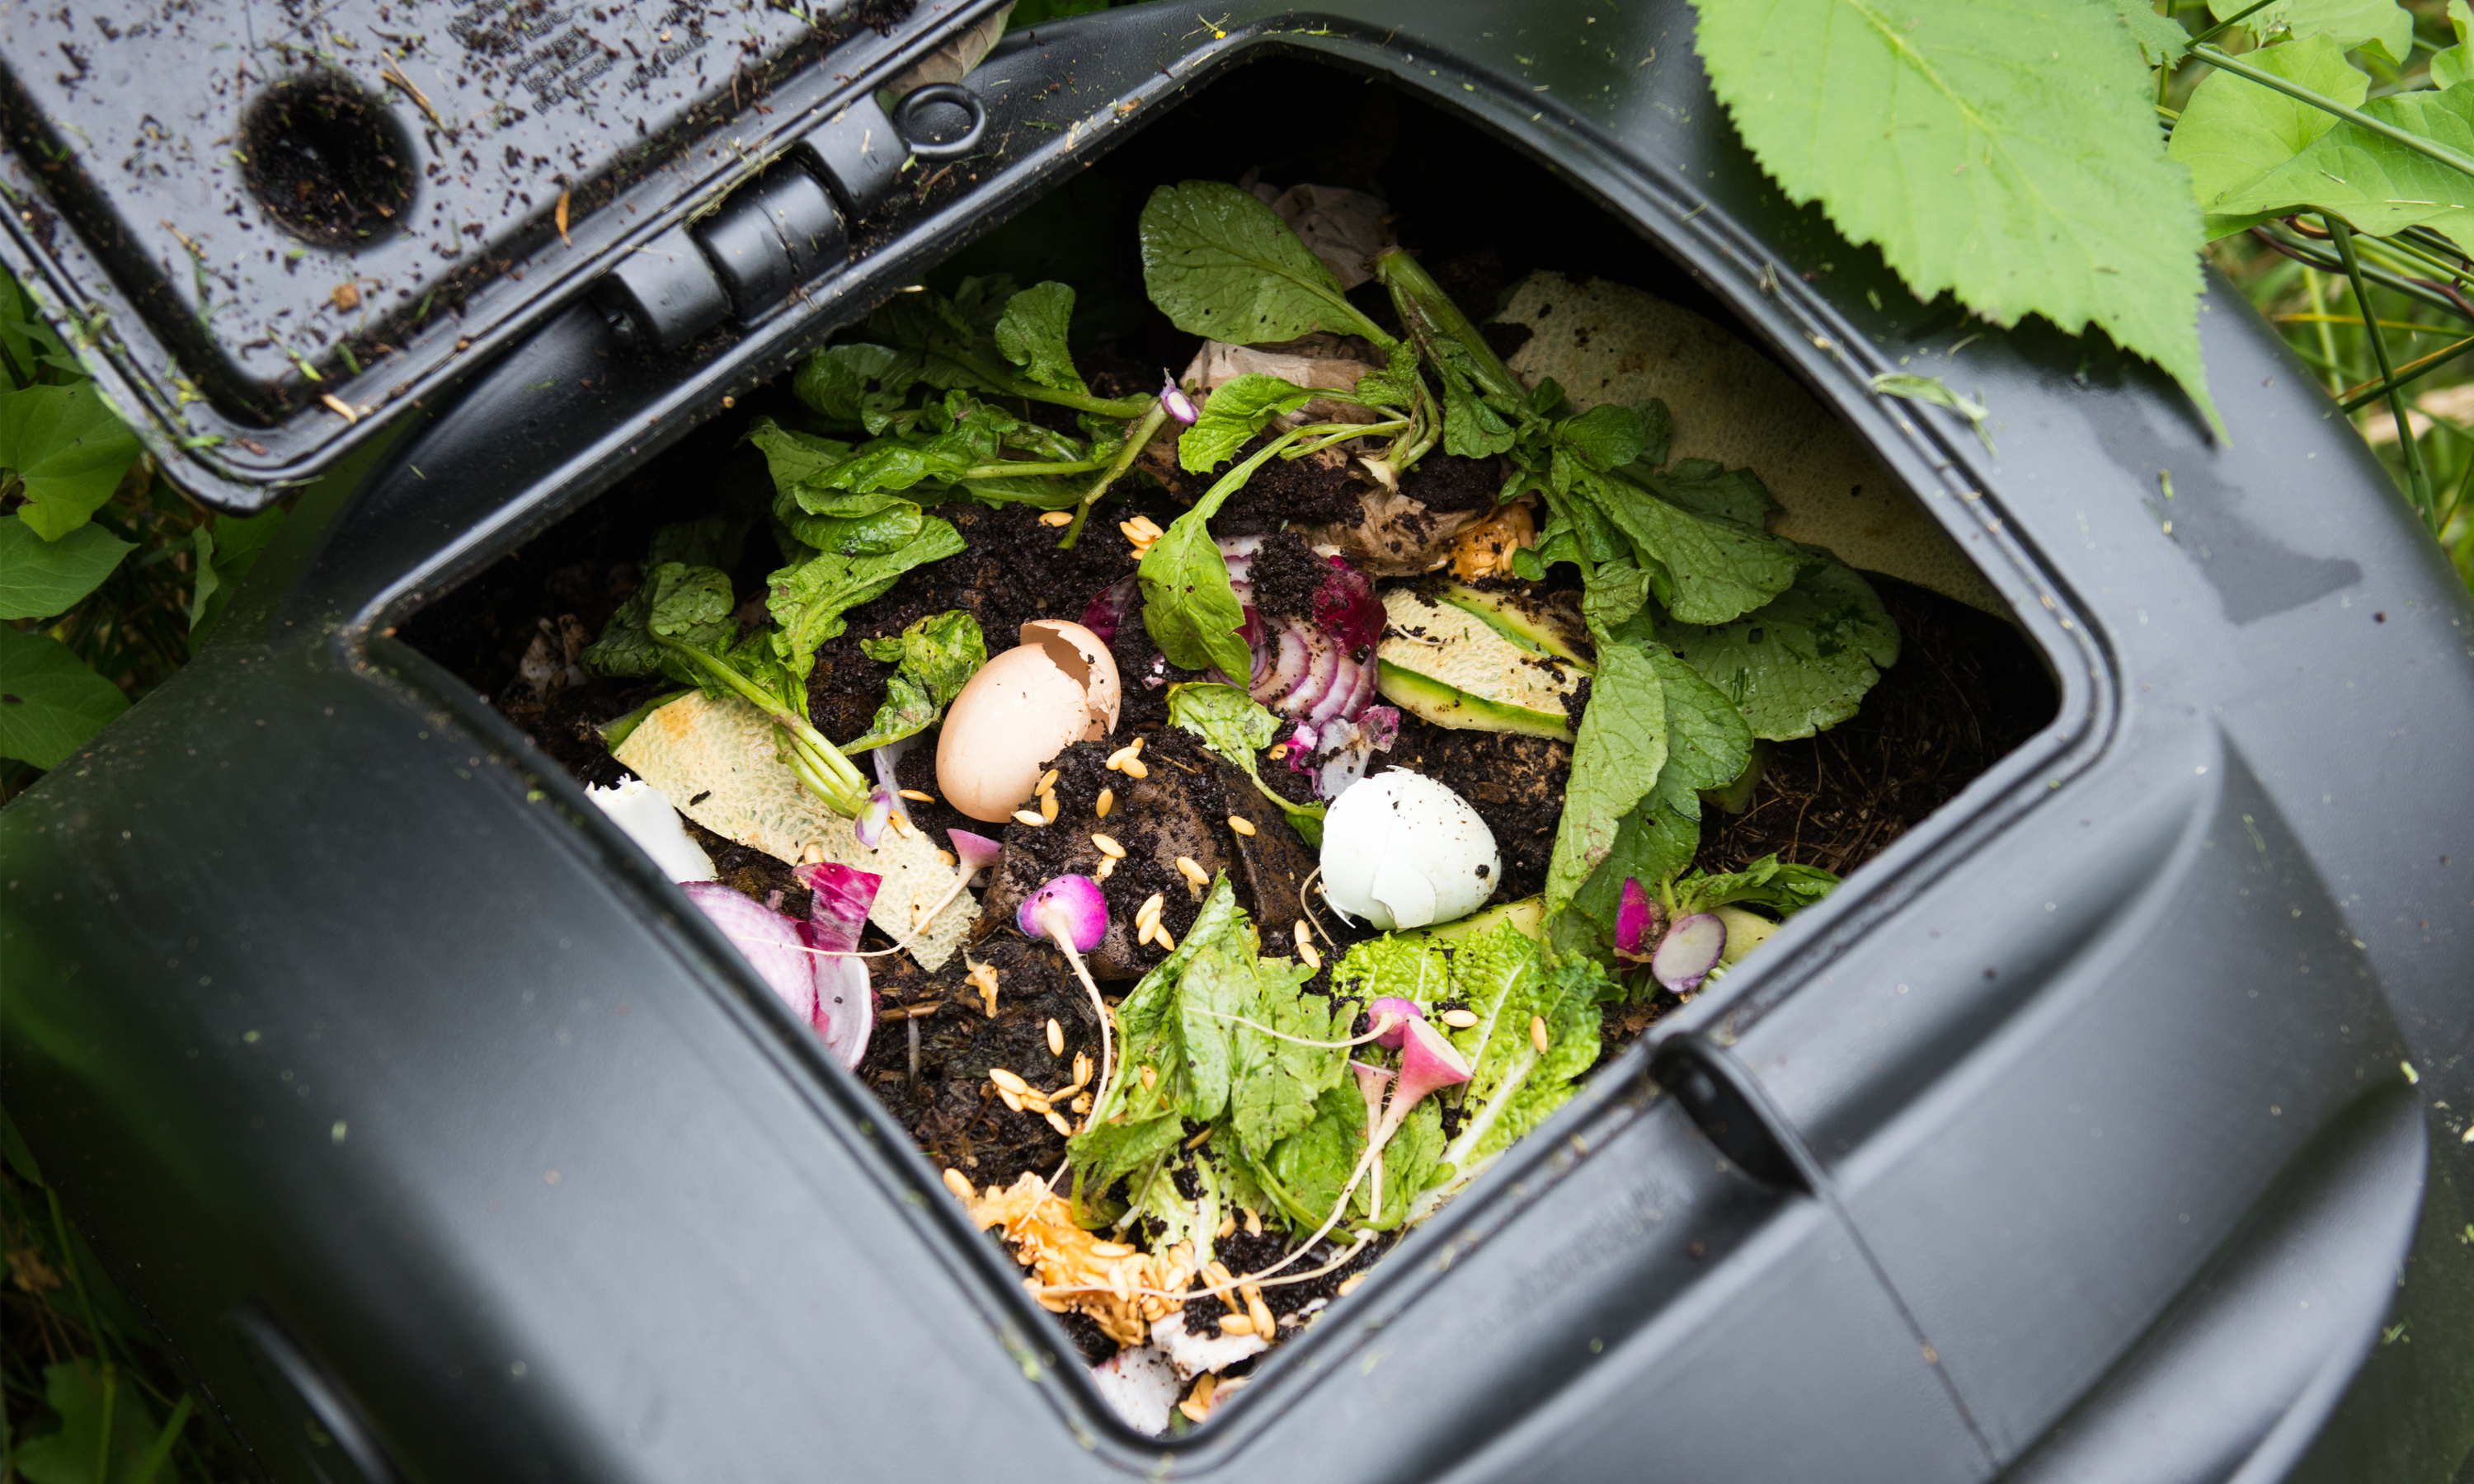 Compost bin with an open lid showing landscape debris, egg shells, and vegetable scraps.